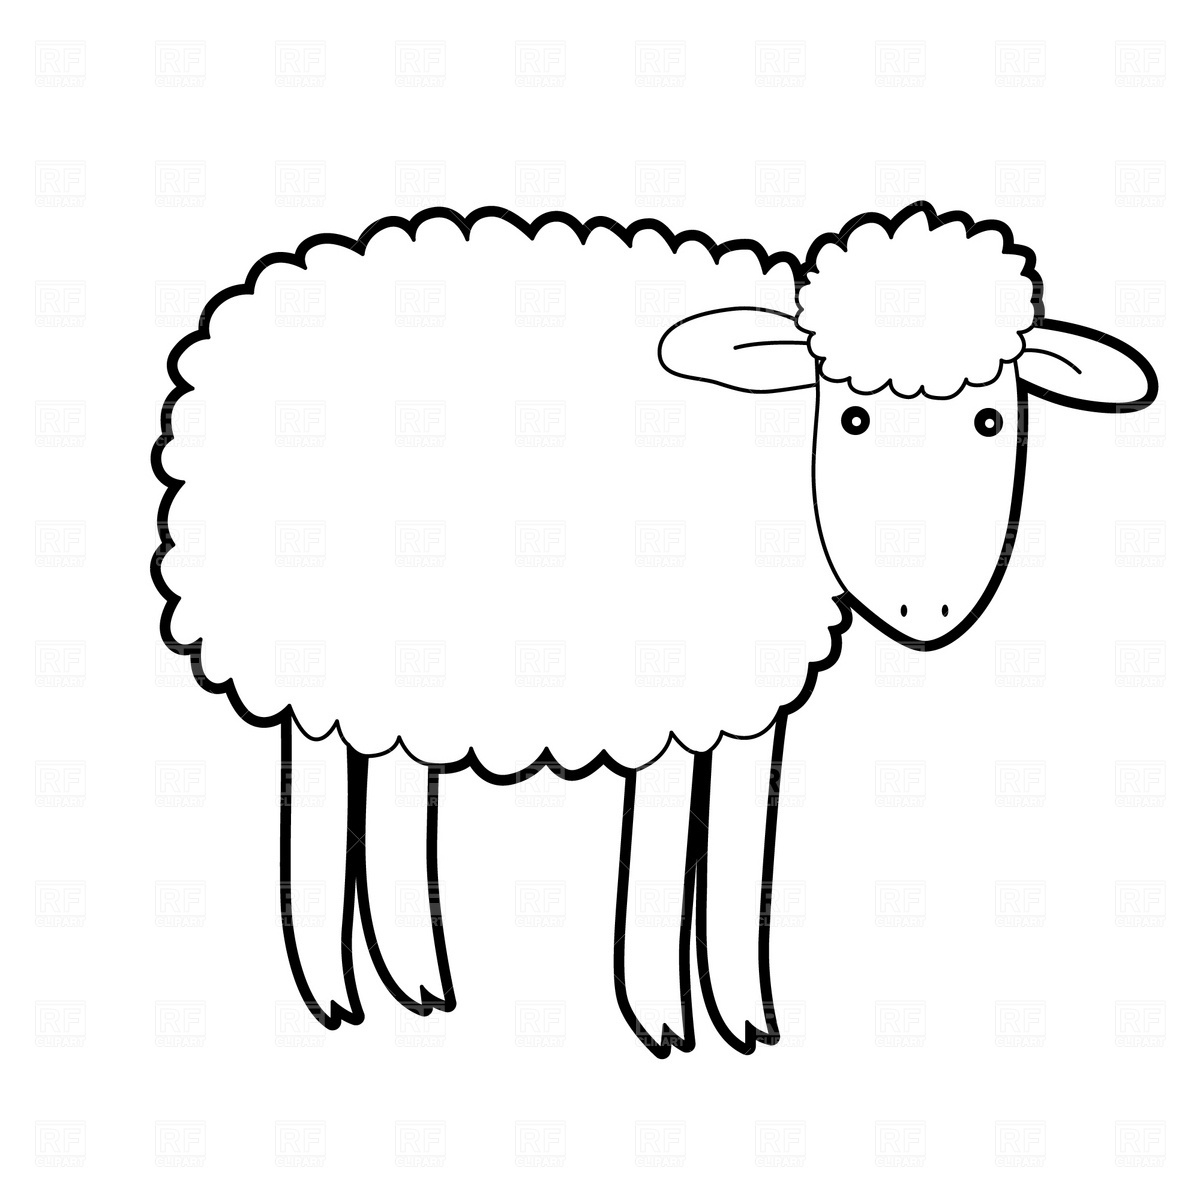 Sheep Outline   Free Download Best Sheep Outline On Clipartmag - Free Printable Pictures Of Sheep